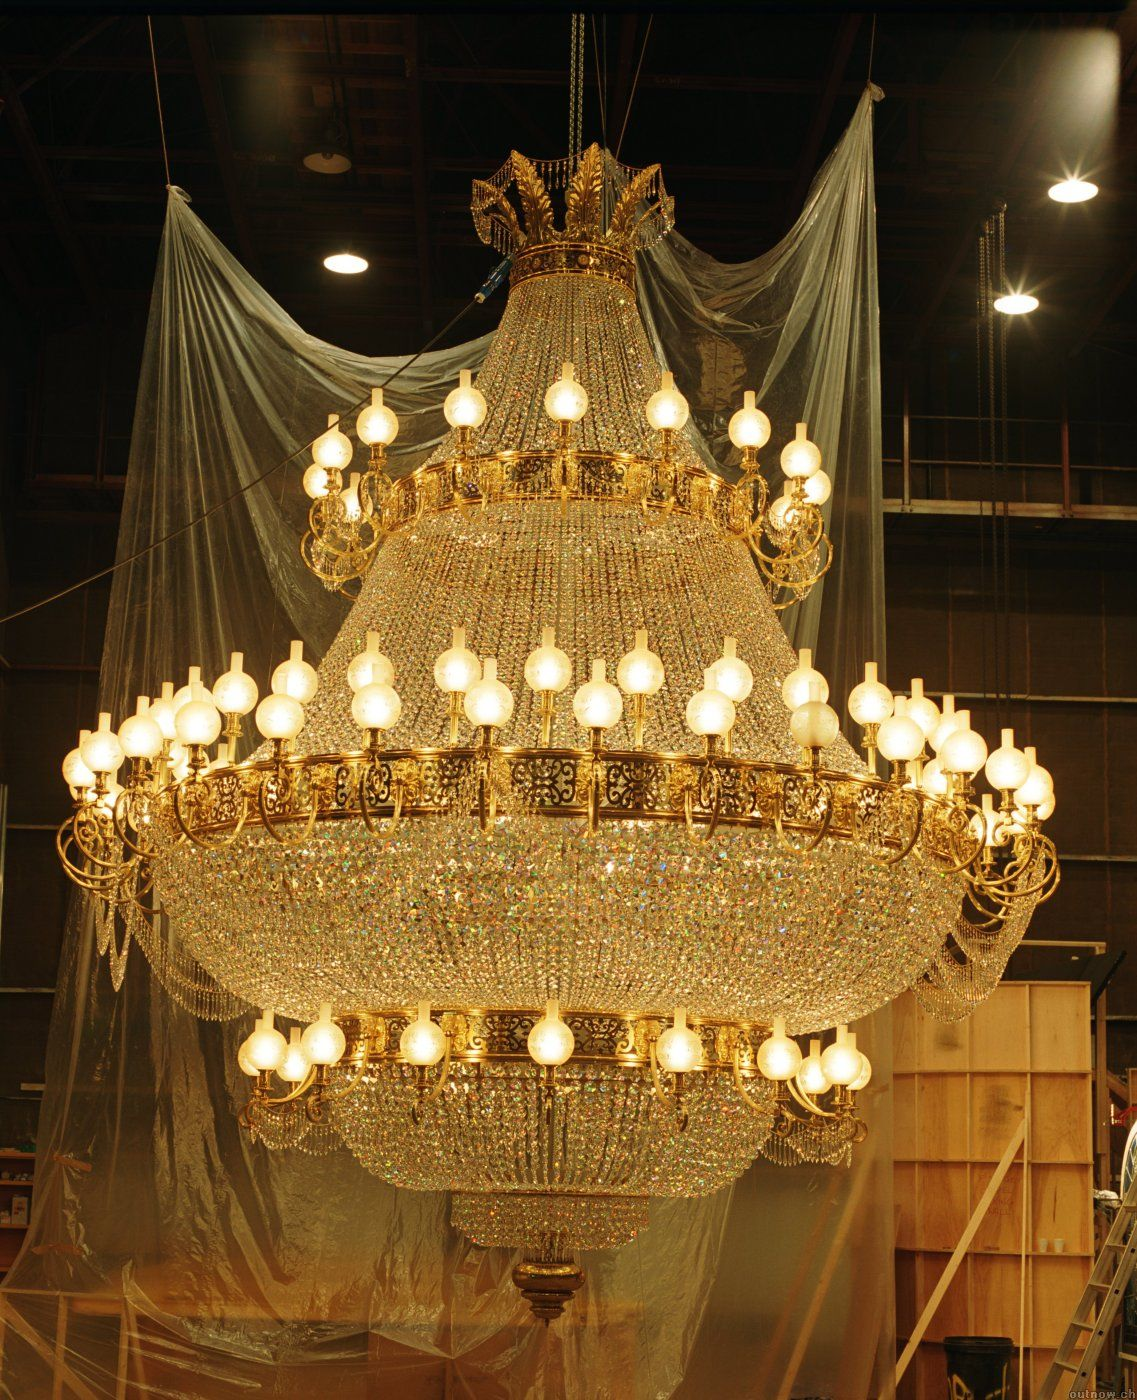 The Chandelier From Phantom